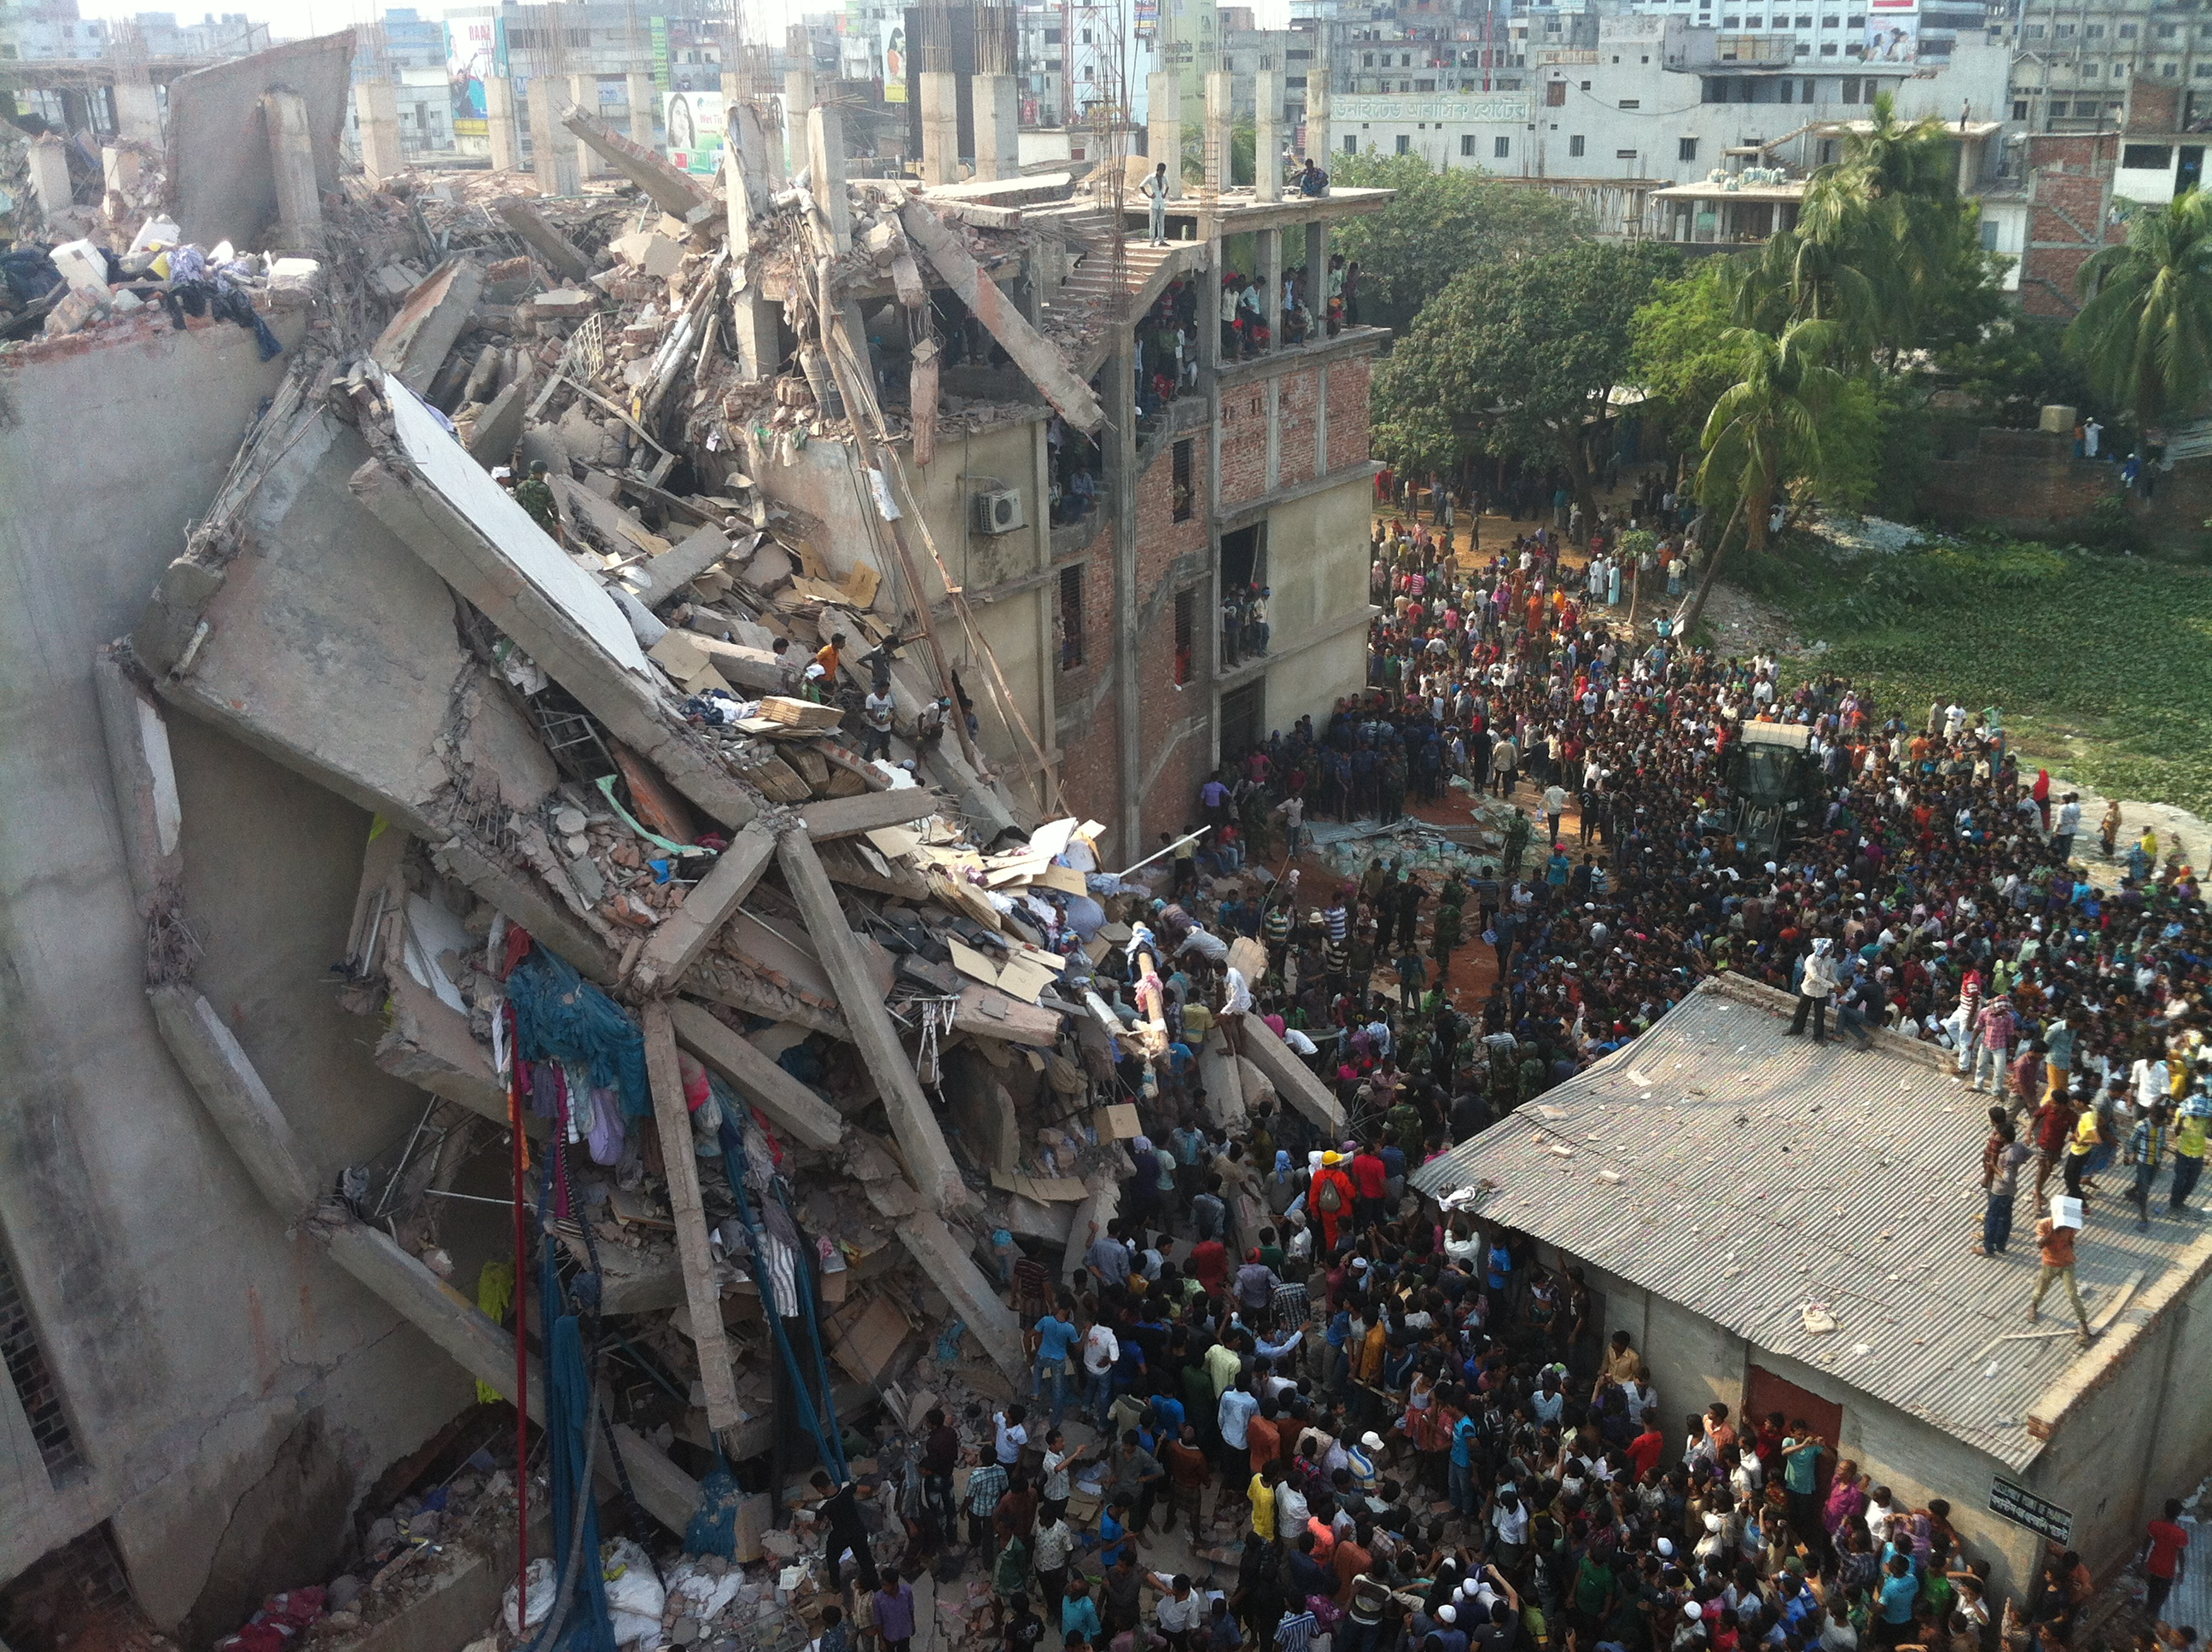 The aftermath of the Rana Plaza factory collapse, photo copywrite ILRF (1)